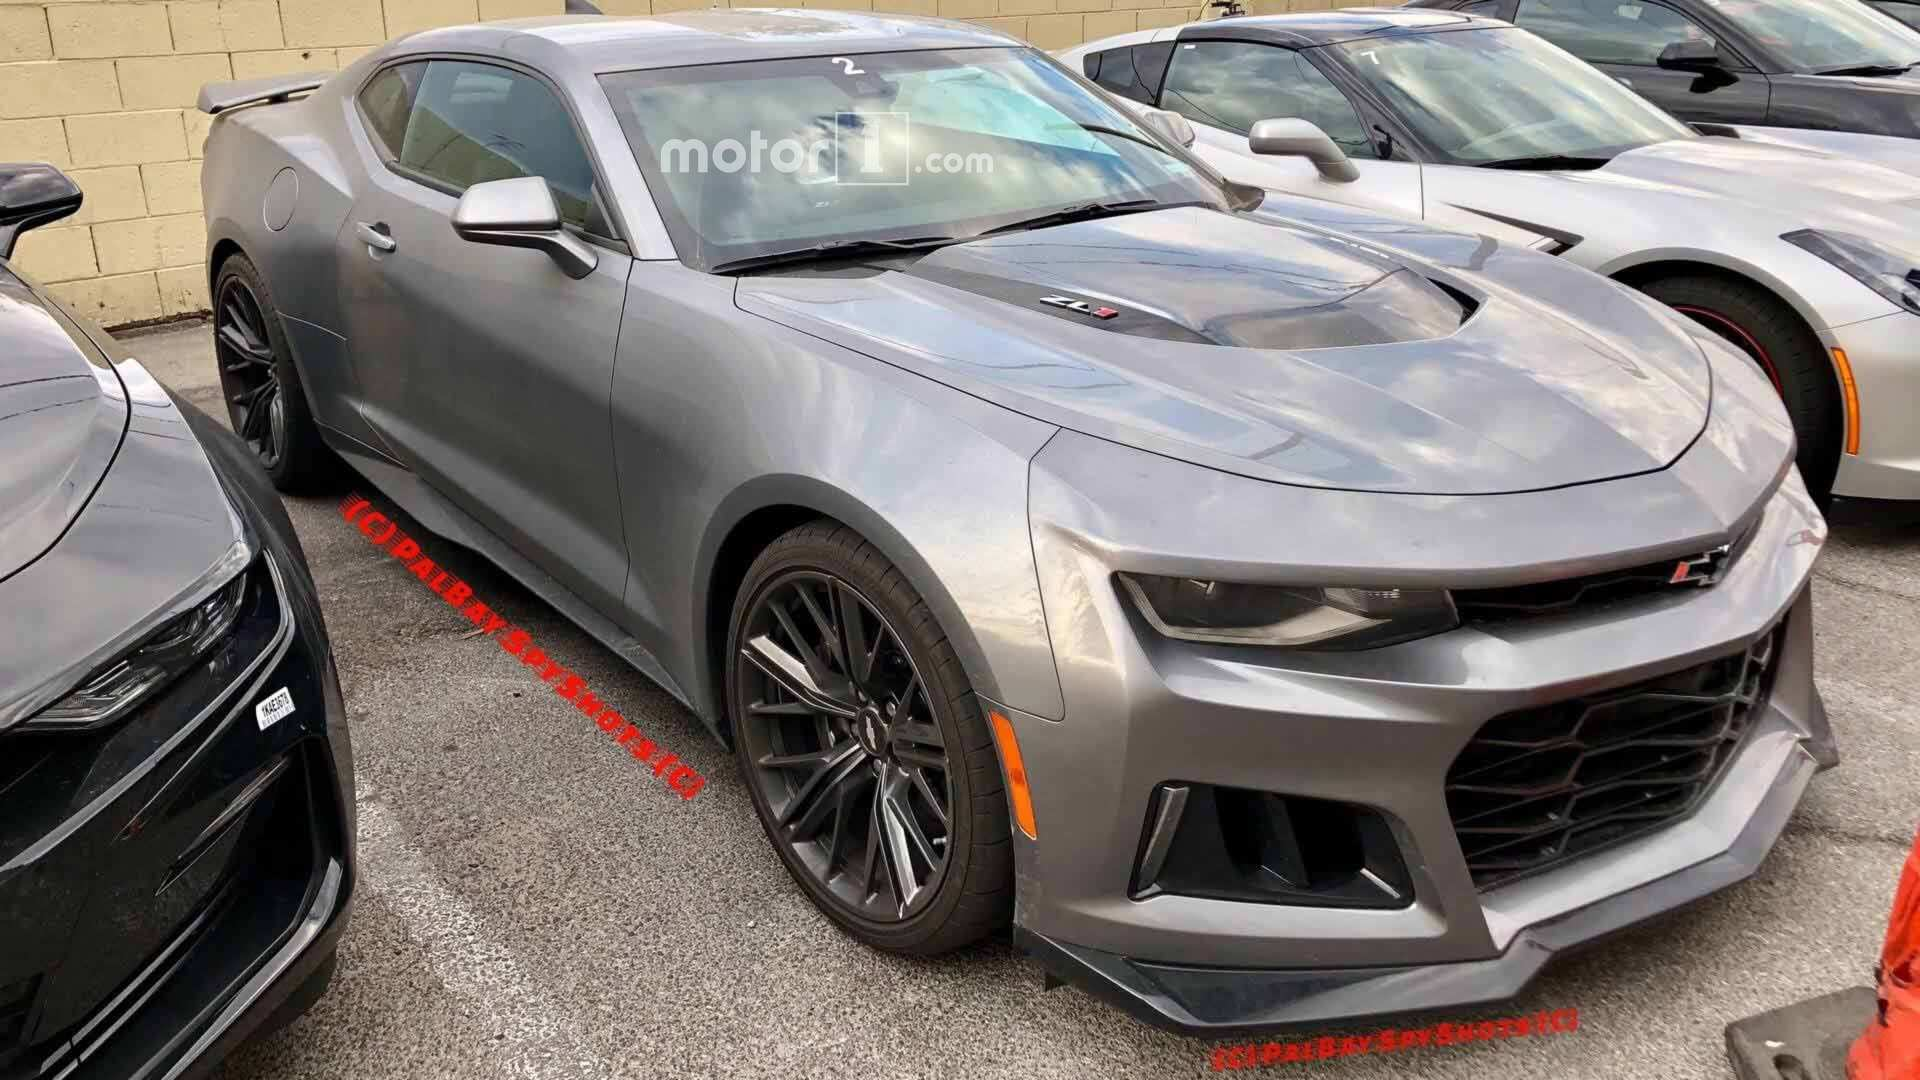 63 A 2019 Chevy Camaro Competition Arrival Release Date